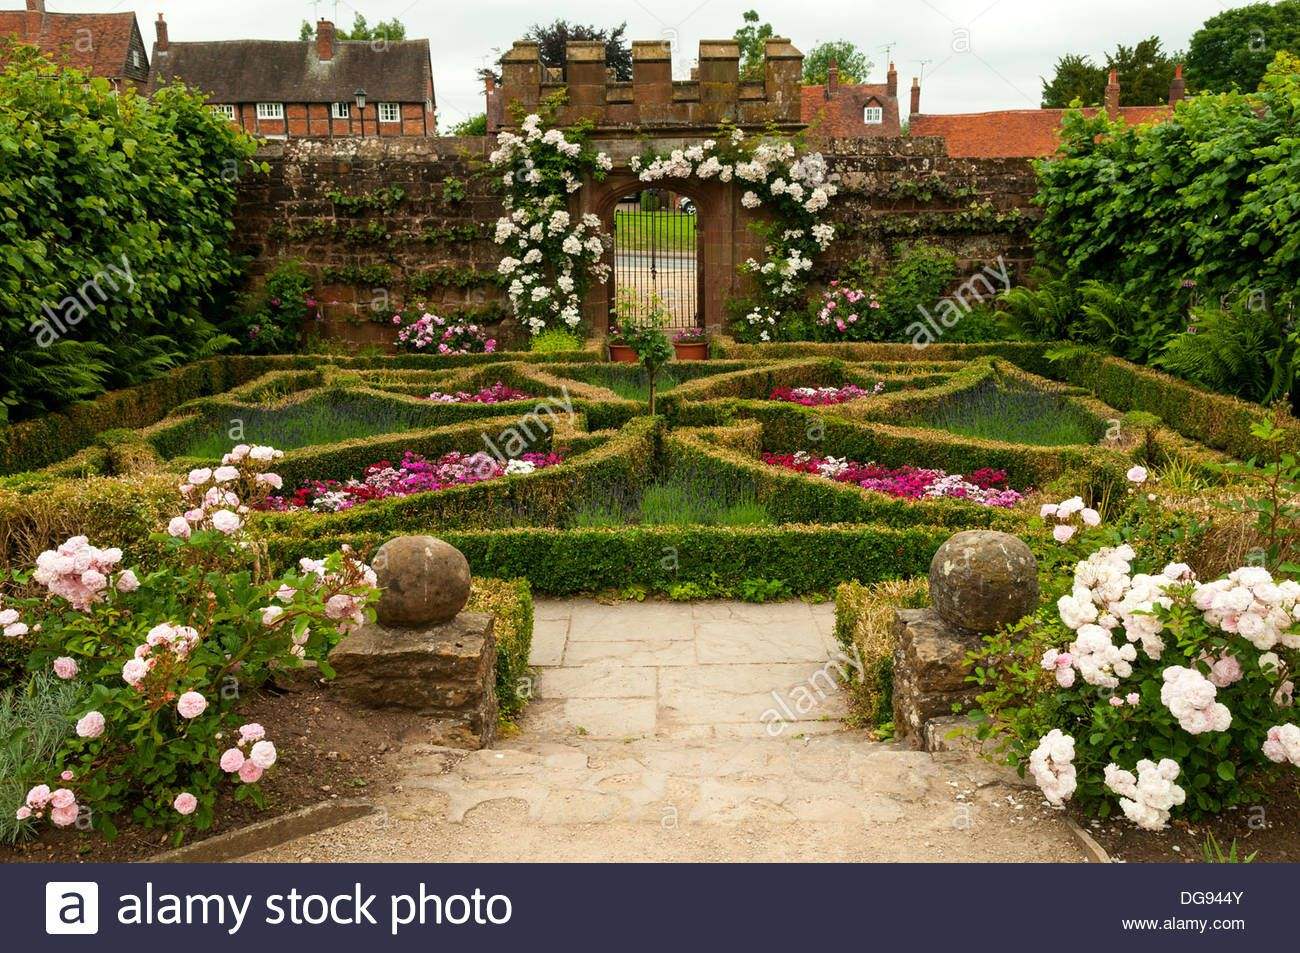 Image result for kenilworth gardens | Kenilworth castle ...